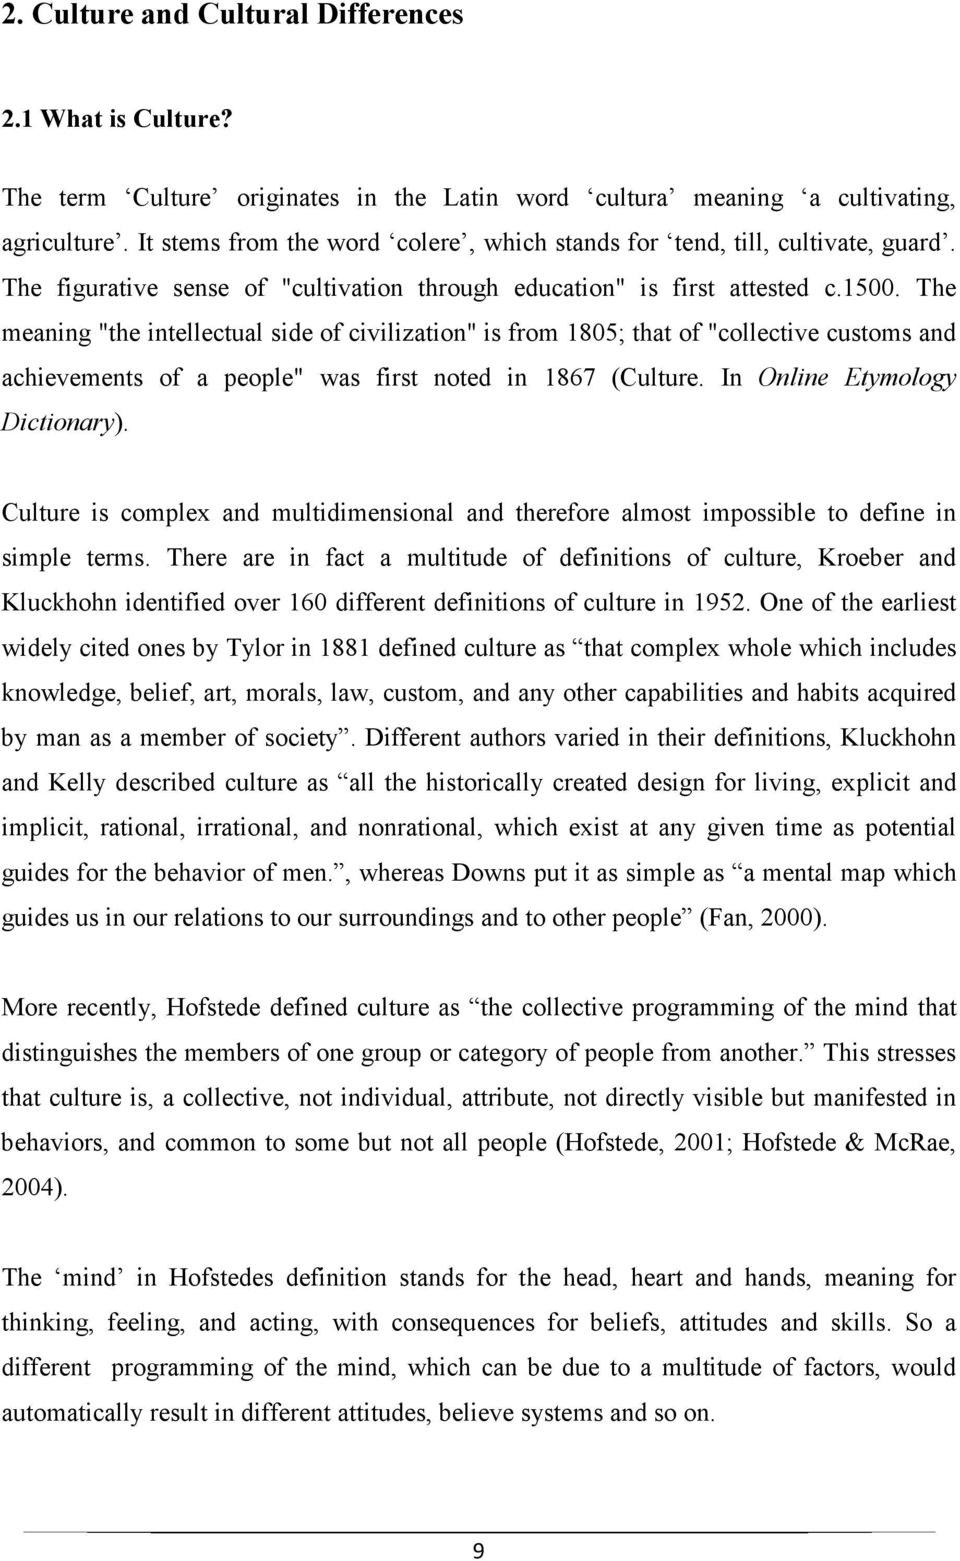 "The meaning ""the intellectual side of civilization"" is from 1805; that of ""collective customs and achievements of a people"" was first noted in 1867 (Culture. In Online Etymology Dictionary)."